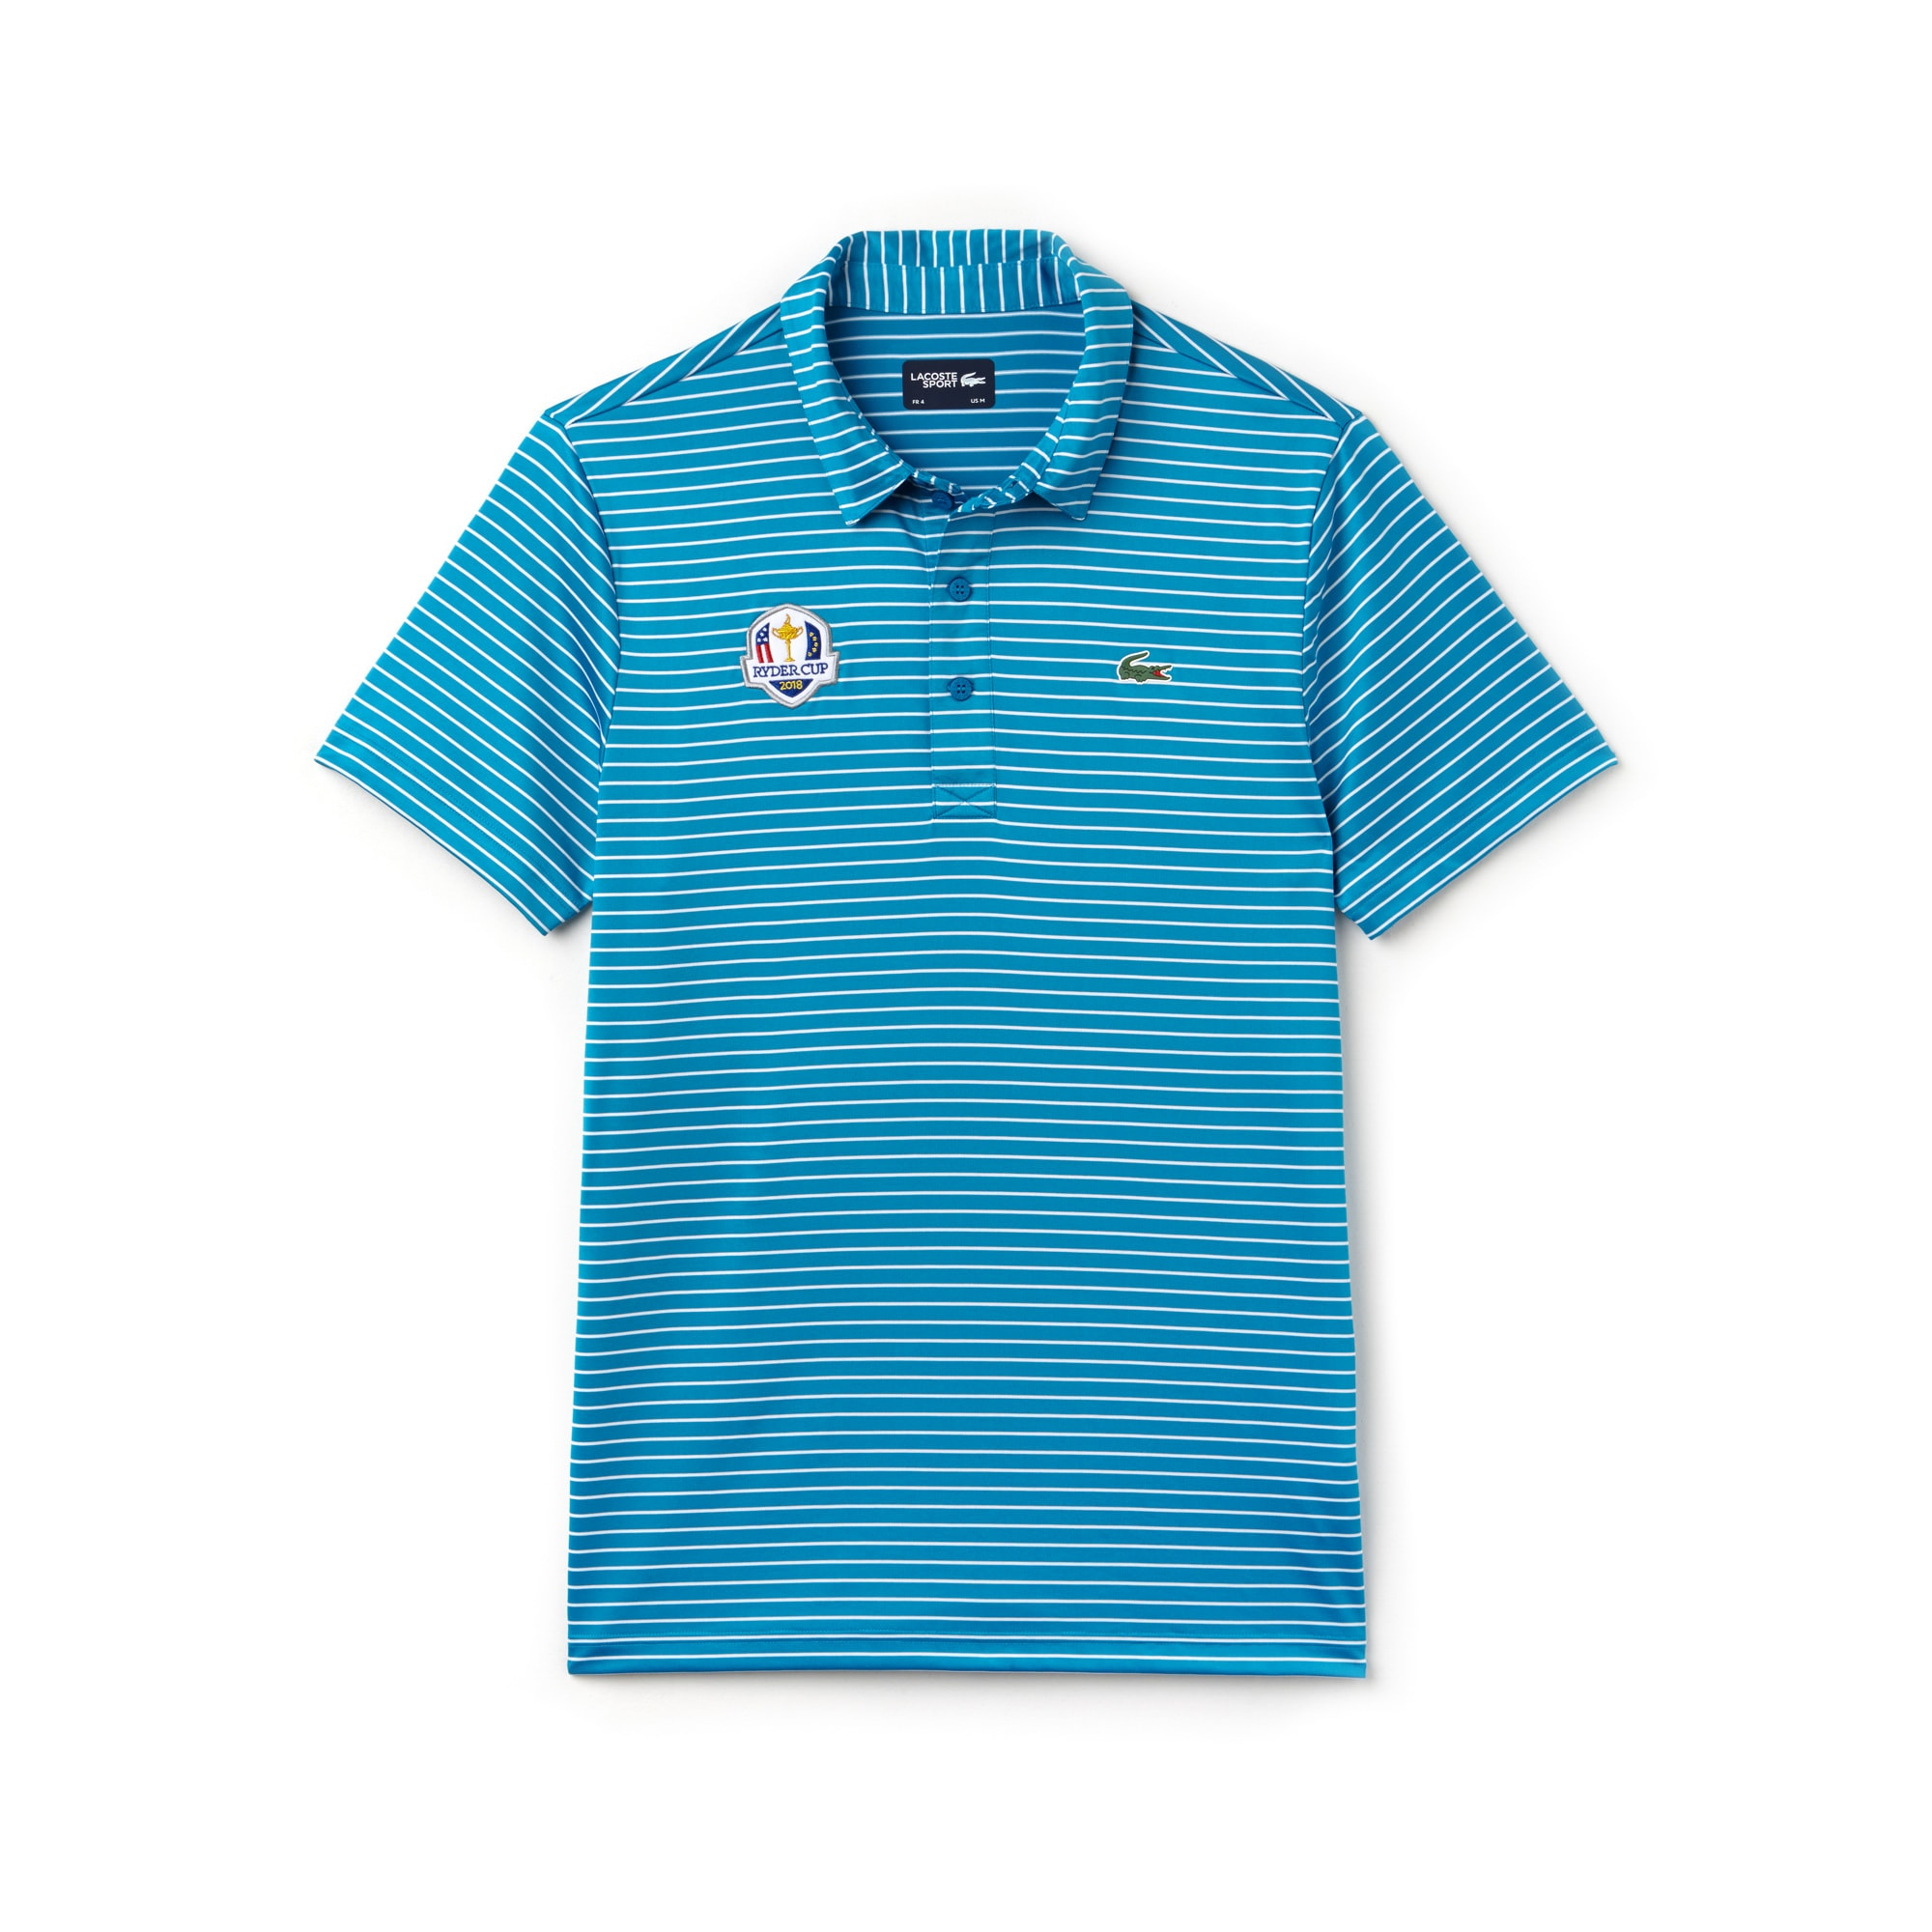 Lacoste - Herren LACOSTE SPORT Ryder Cup Edition gestreiftes Poloshirt - 3